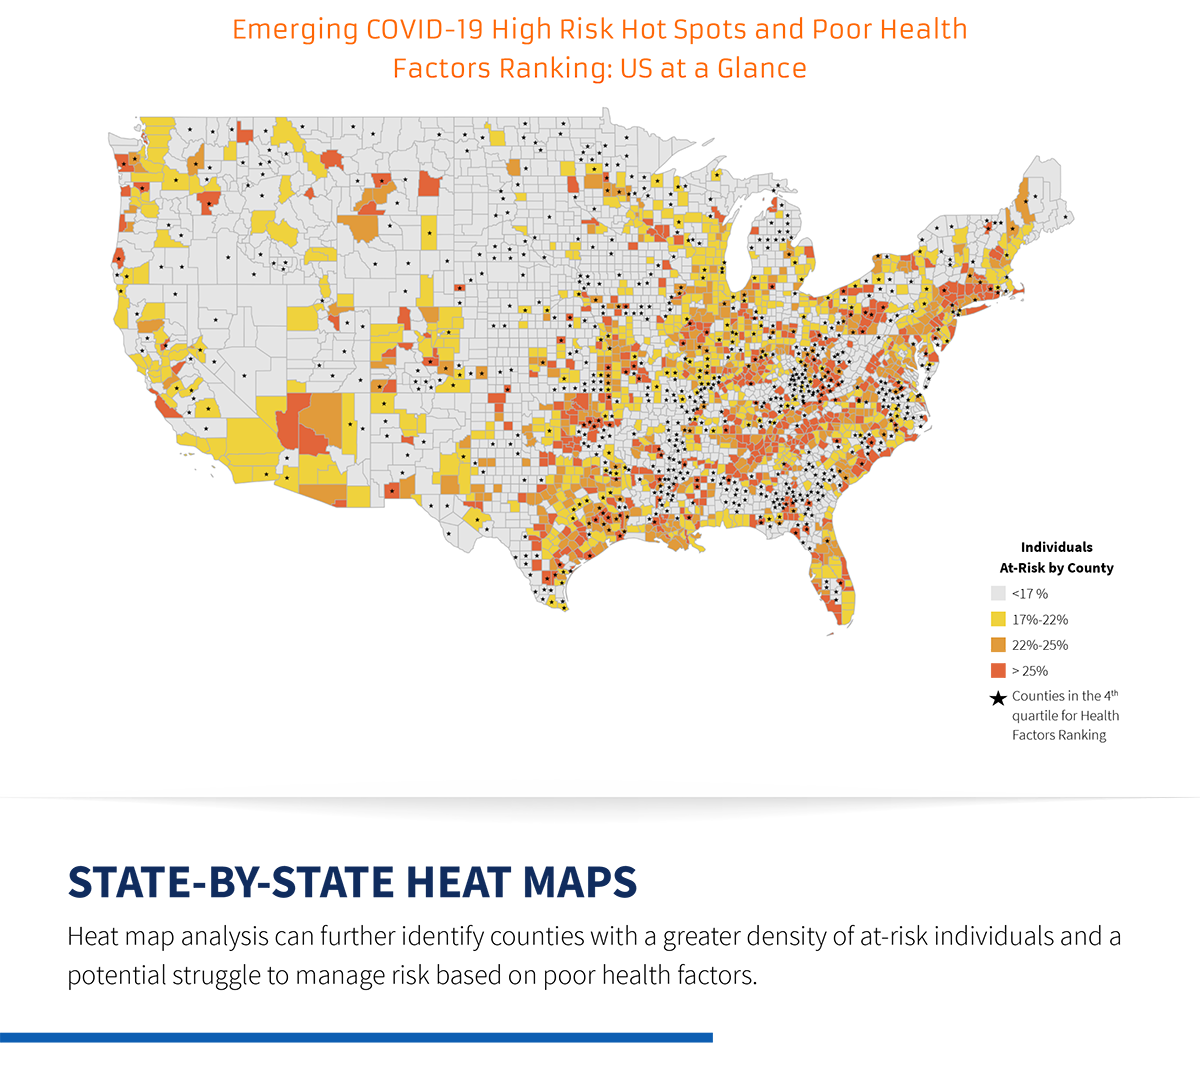 Emerging COVID-19 High Risk Hot Spots and Poor Health Factors Ranking